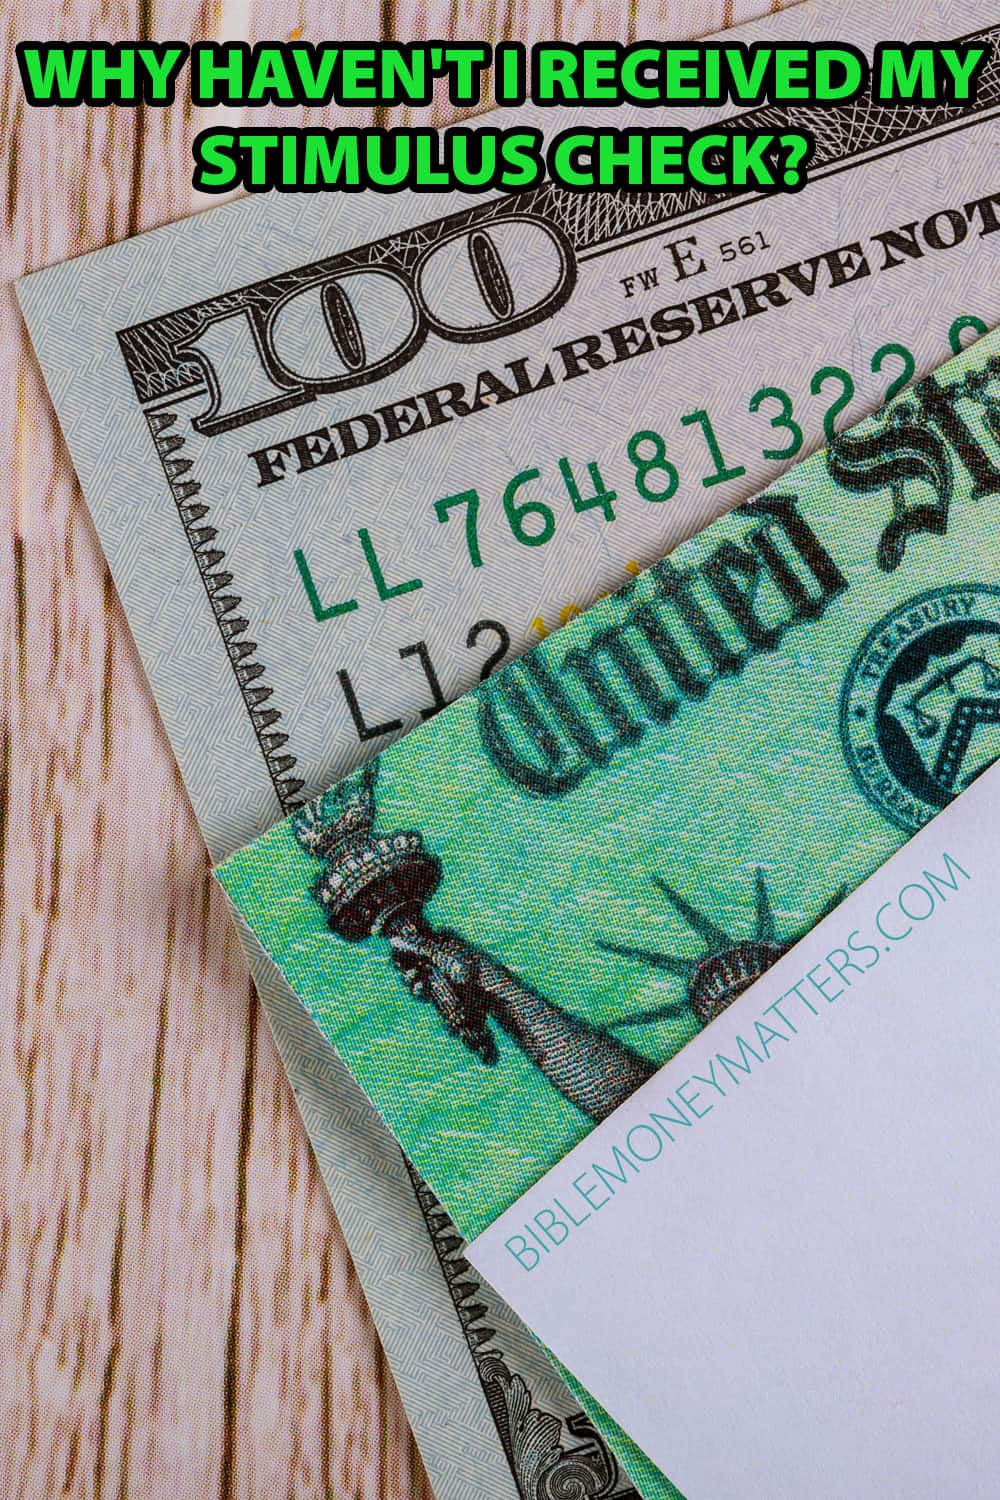 Why Haven't I Received My Stimulus Check? Steps To Get Your Economic Impact Payment